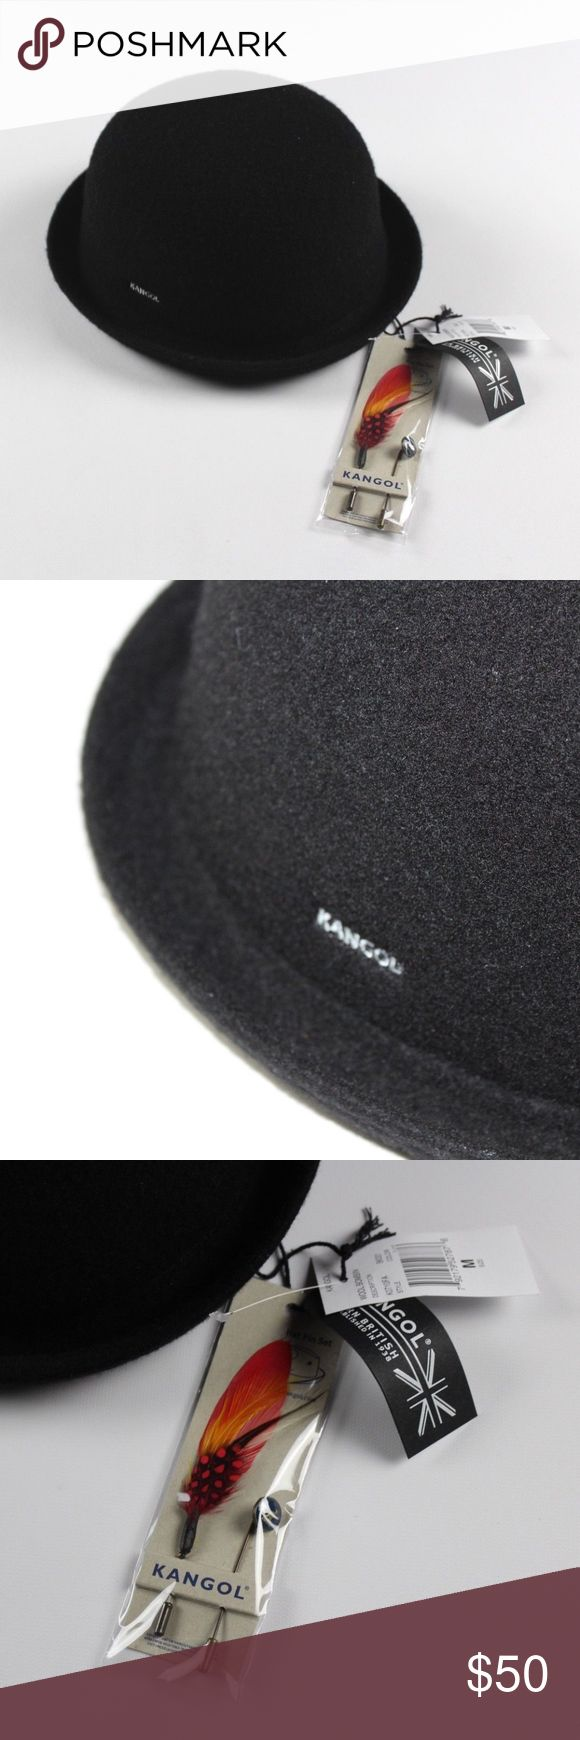 New Kangol Medium Wool Bombin Bowler Derby Hat Cap Kangol Wool Bombin Bowler Derby Hat  Excellent hat  New with Tags  Black  60% Wool 40% Acrylic  Size is Medium and comes with 2 hat pins   Check out my other items for sale in my store!  L1 Kangol Accessories Hats